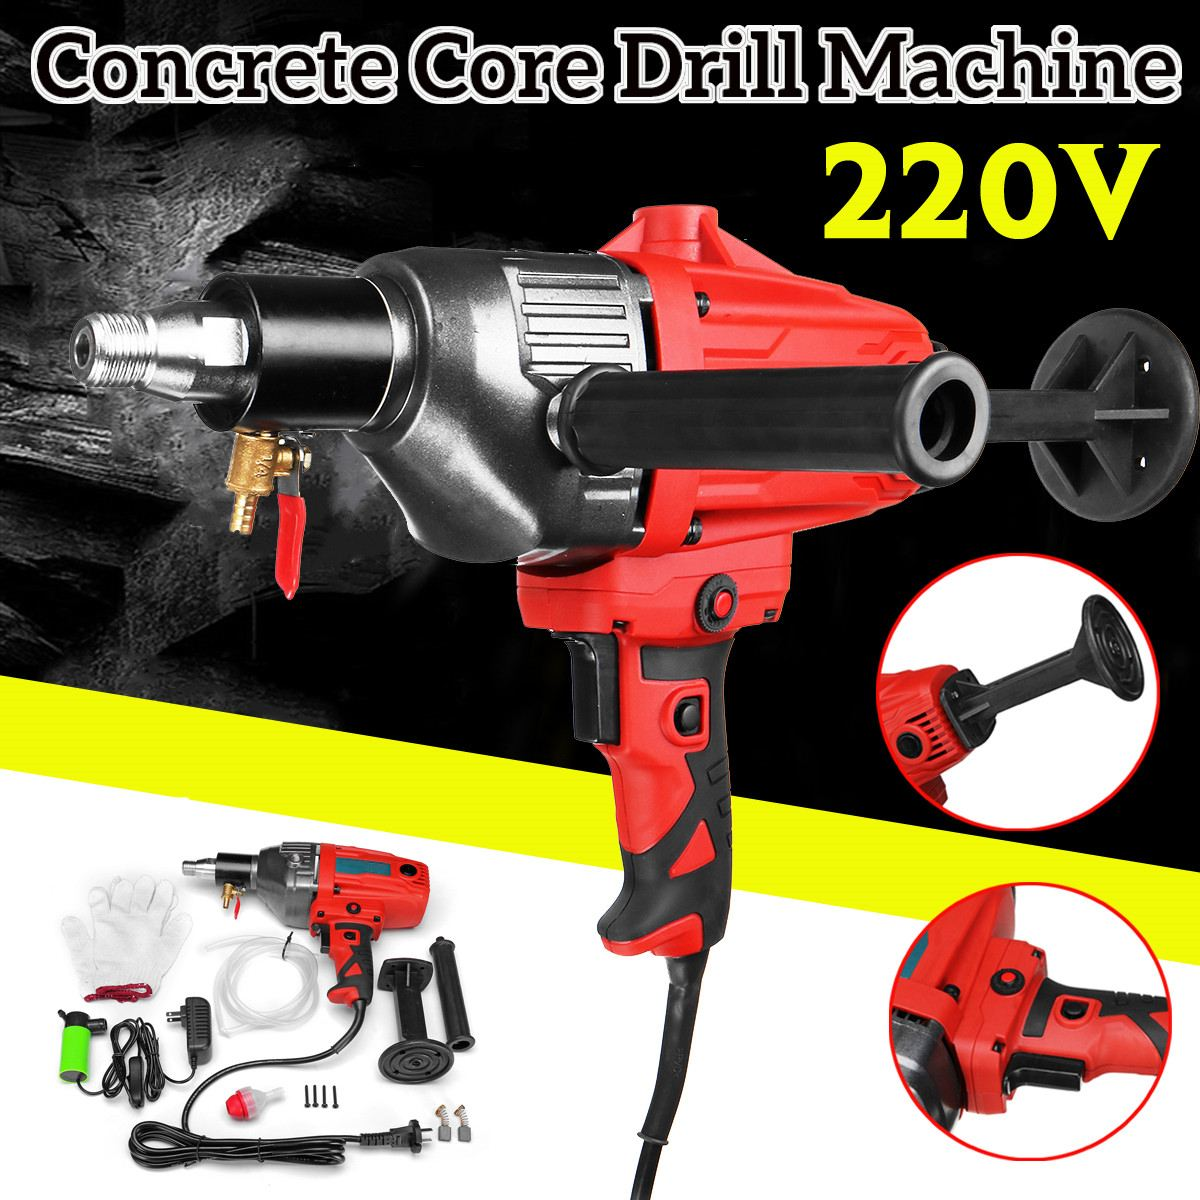 220V 1600W Diamond Concrete Core Drill Hand Held Machine Set 110mm Wet Drilling Powerful Concrete Core Drill Machine Power Tool